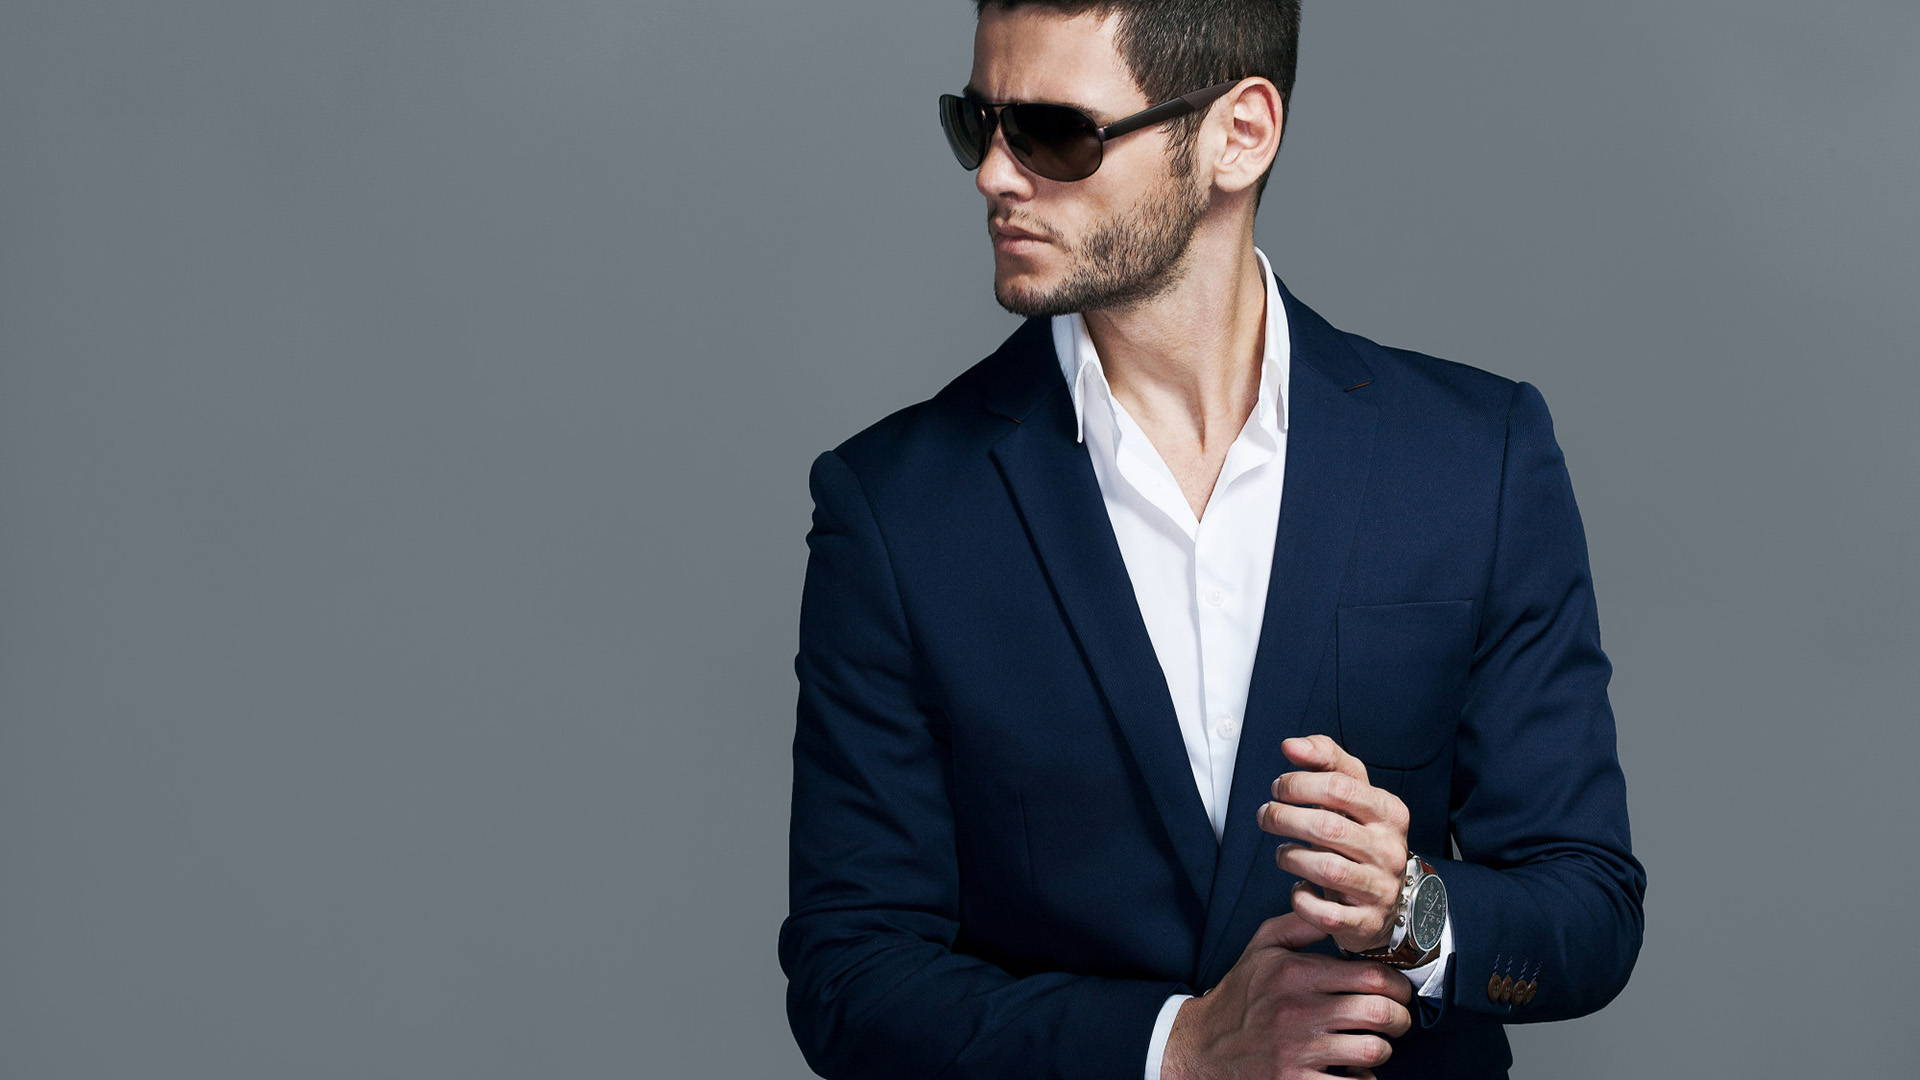 How to Dress Well: 9 Rules to Help You Go From Frumpy to Sharp